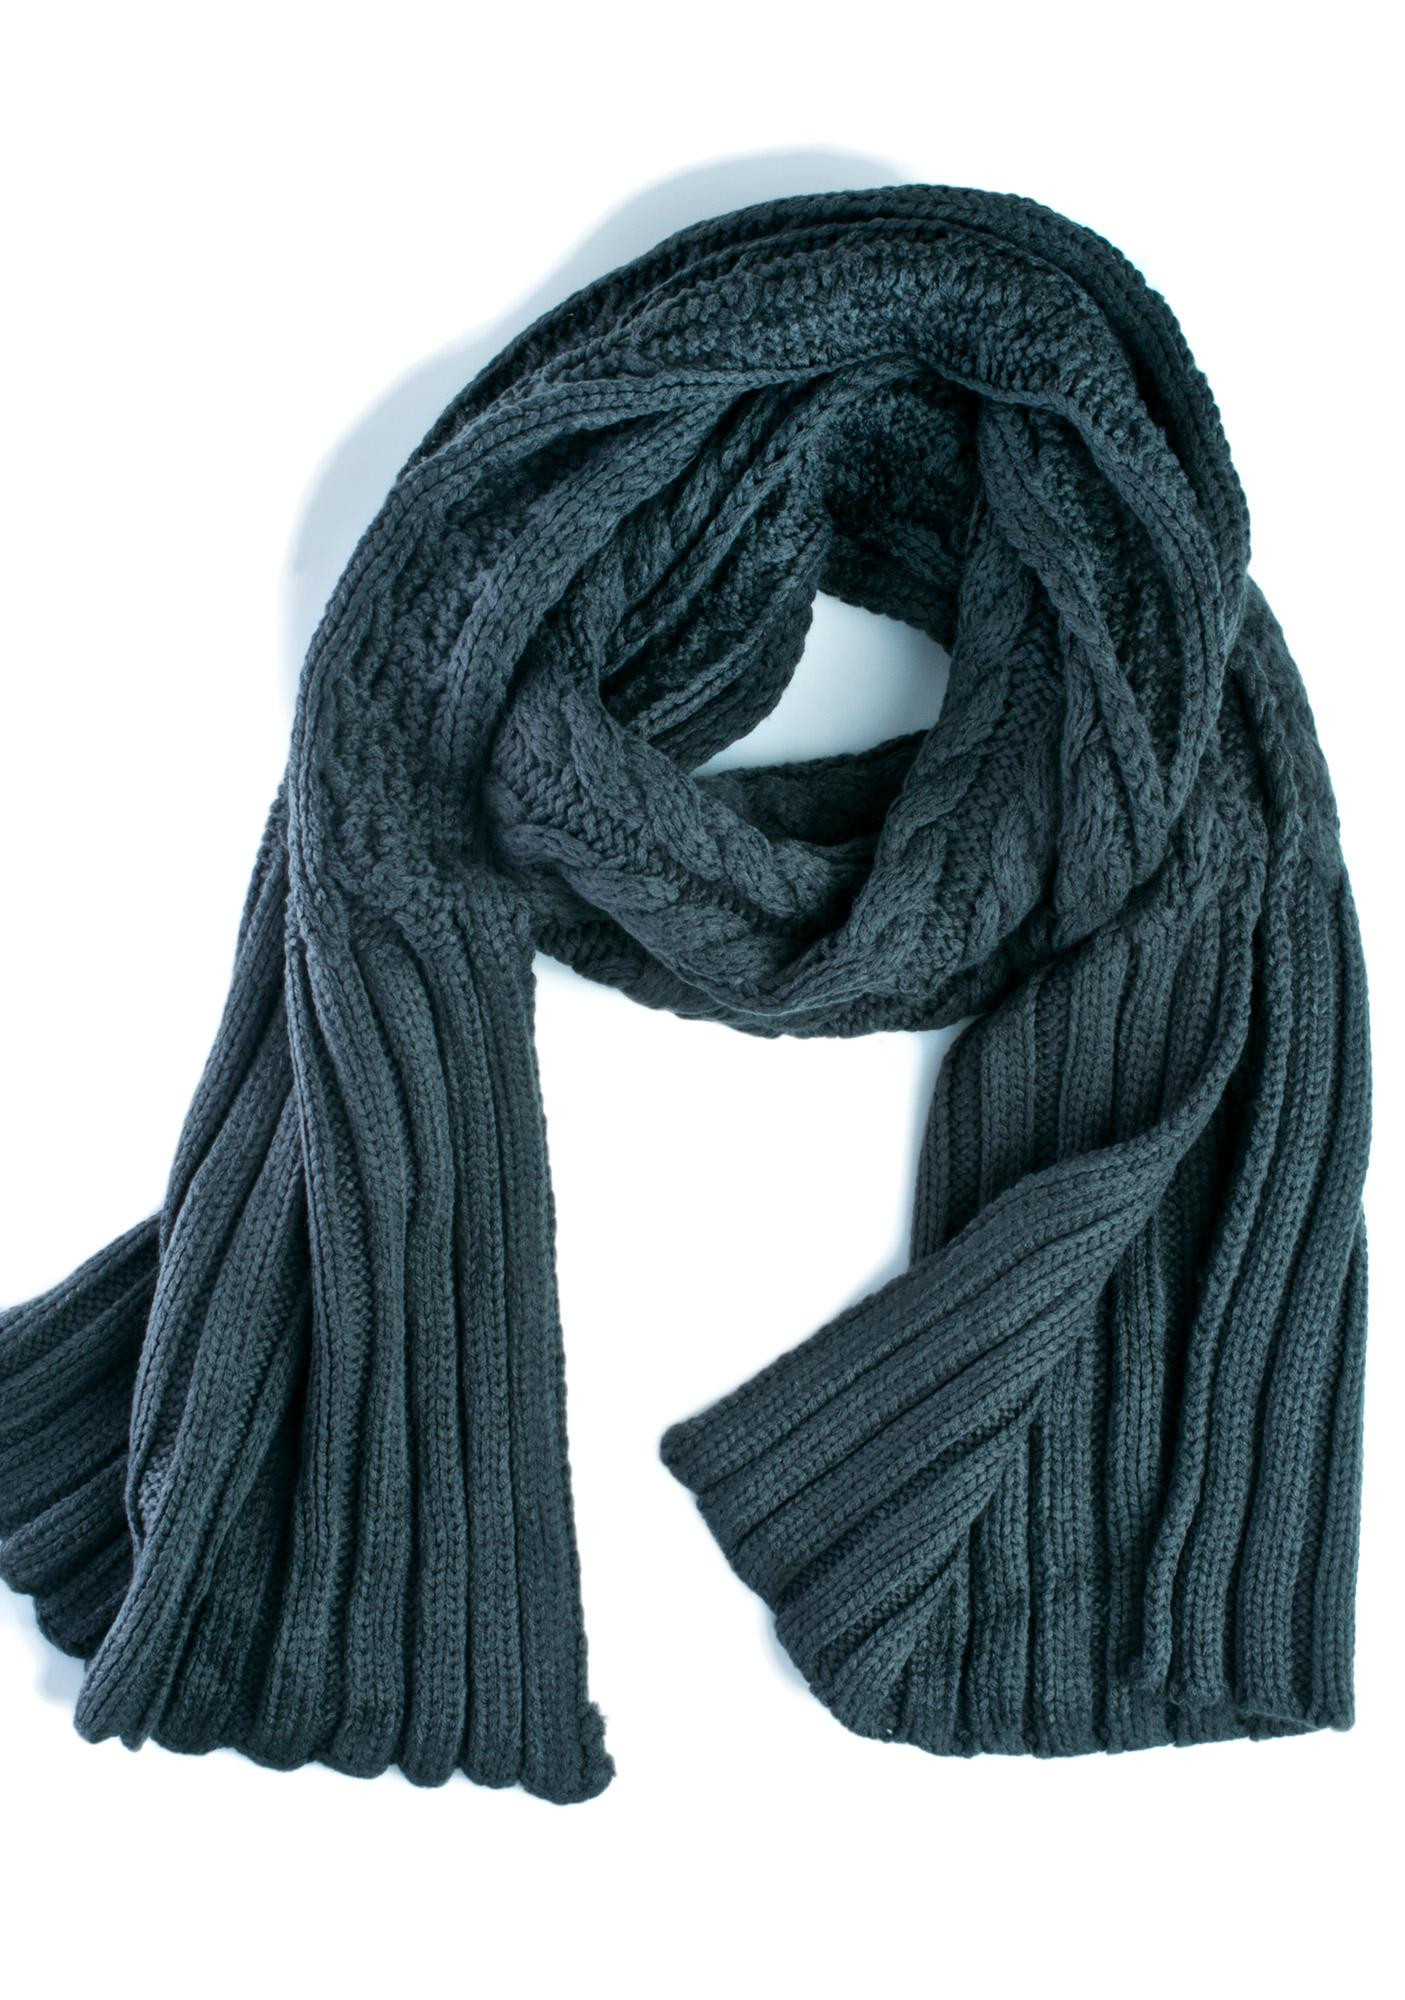 Awesome Chunky Cable Knit Green Scarf Cable Scarf Of Innovative 49 Ideas Cable Scarf